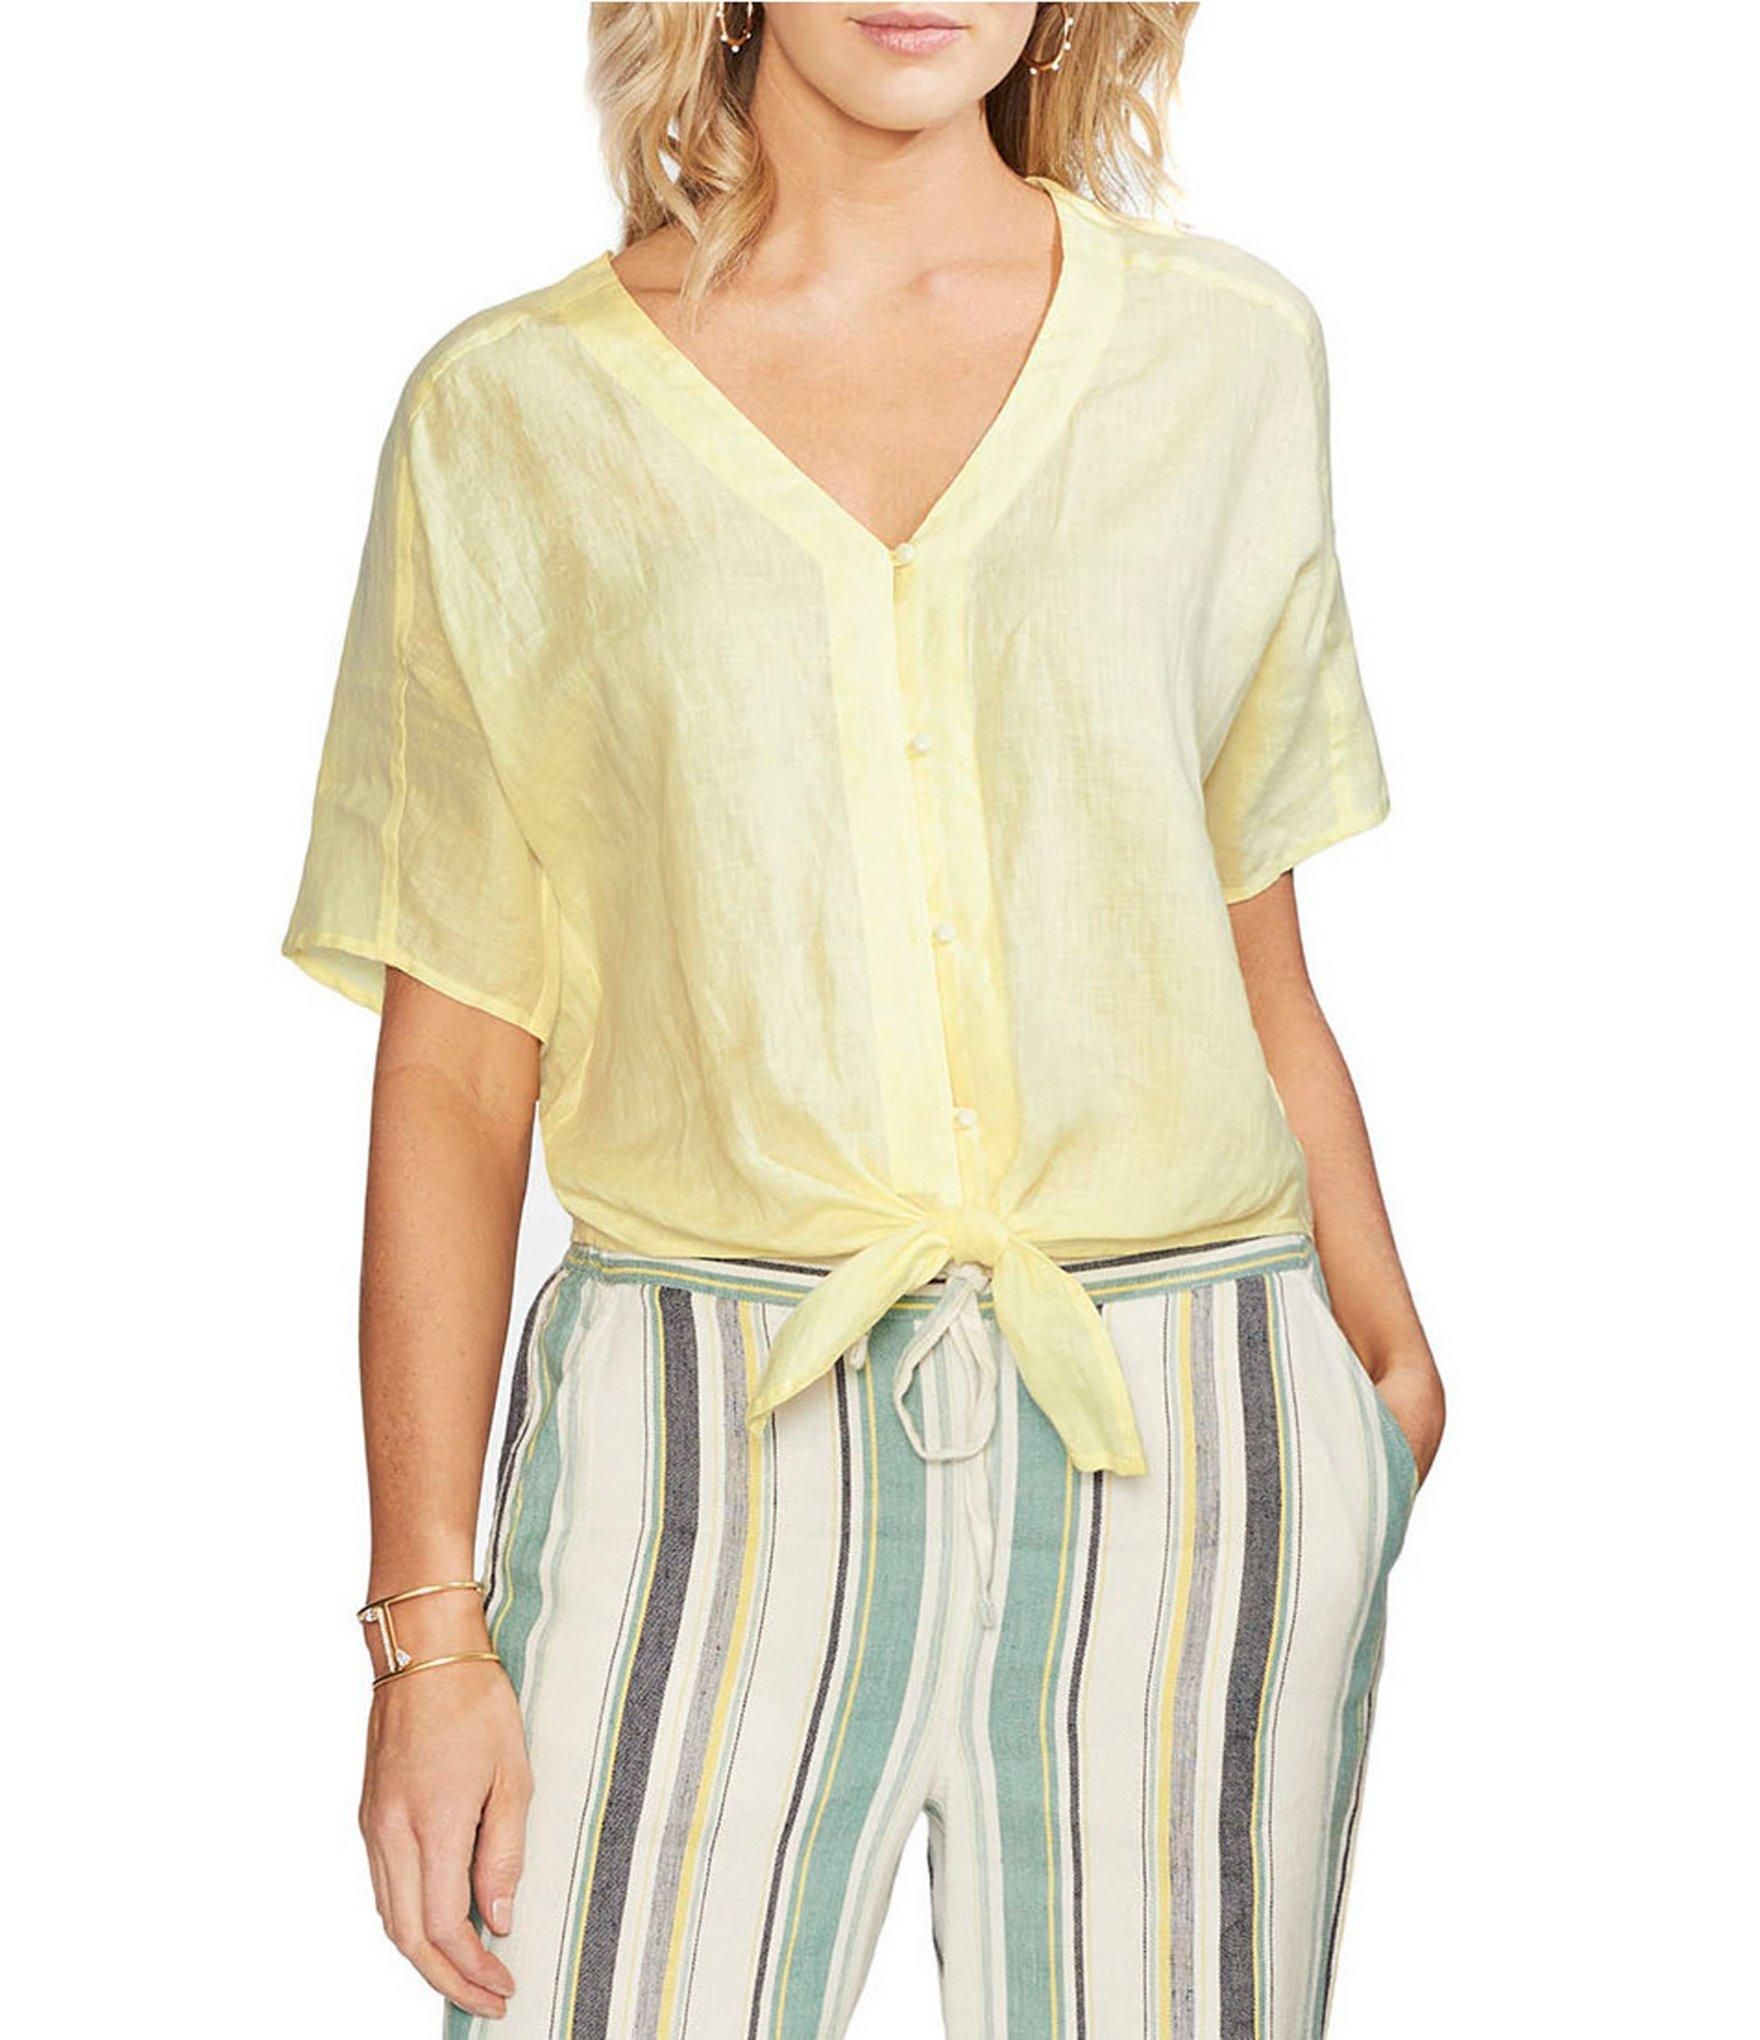 8e50767a8de902 Lyst - Vince Camuto Short Sleeve Button Down Tie Front Blouse in Yellow